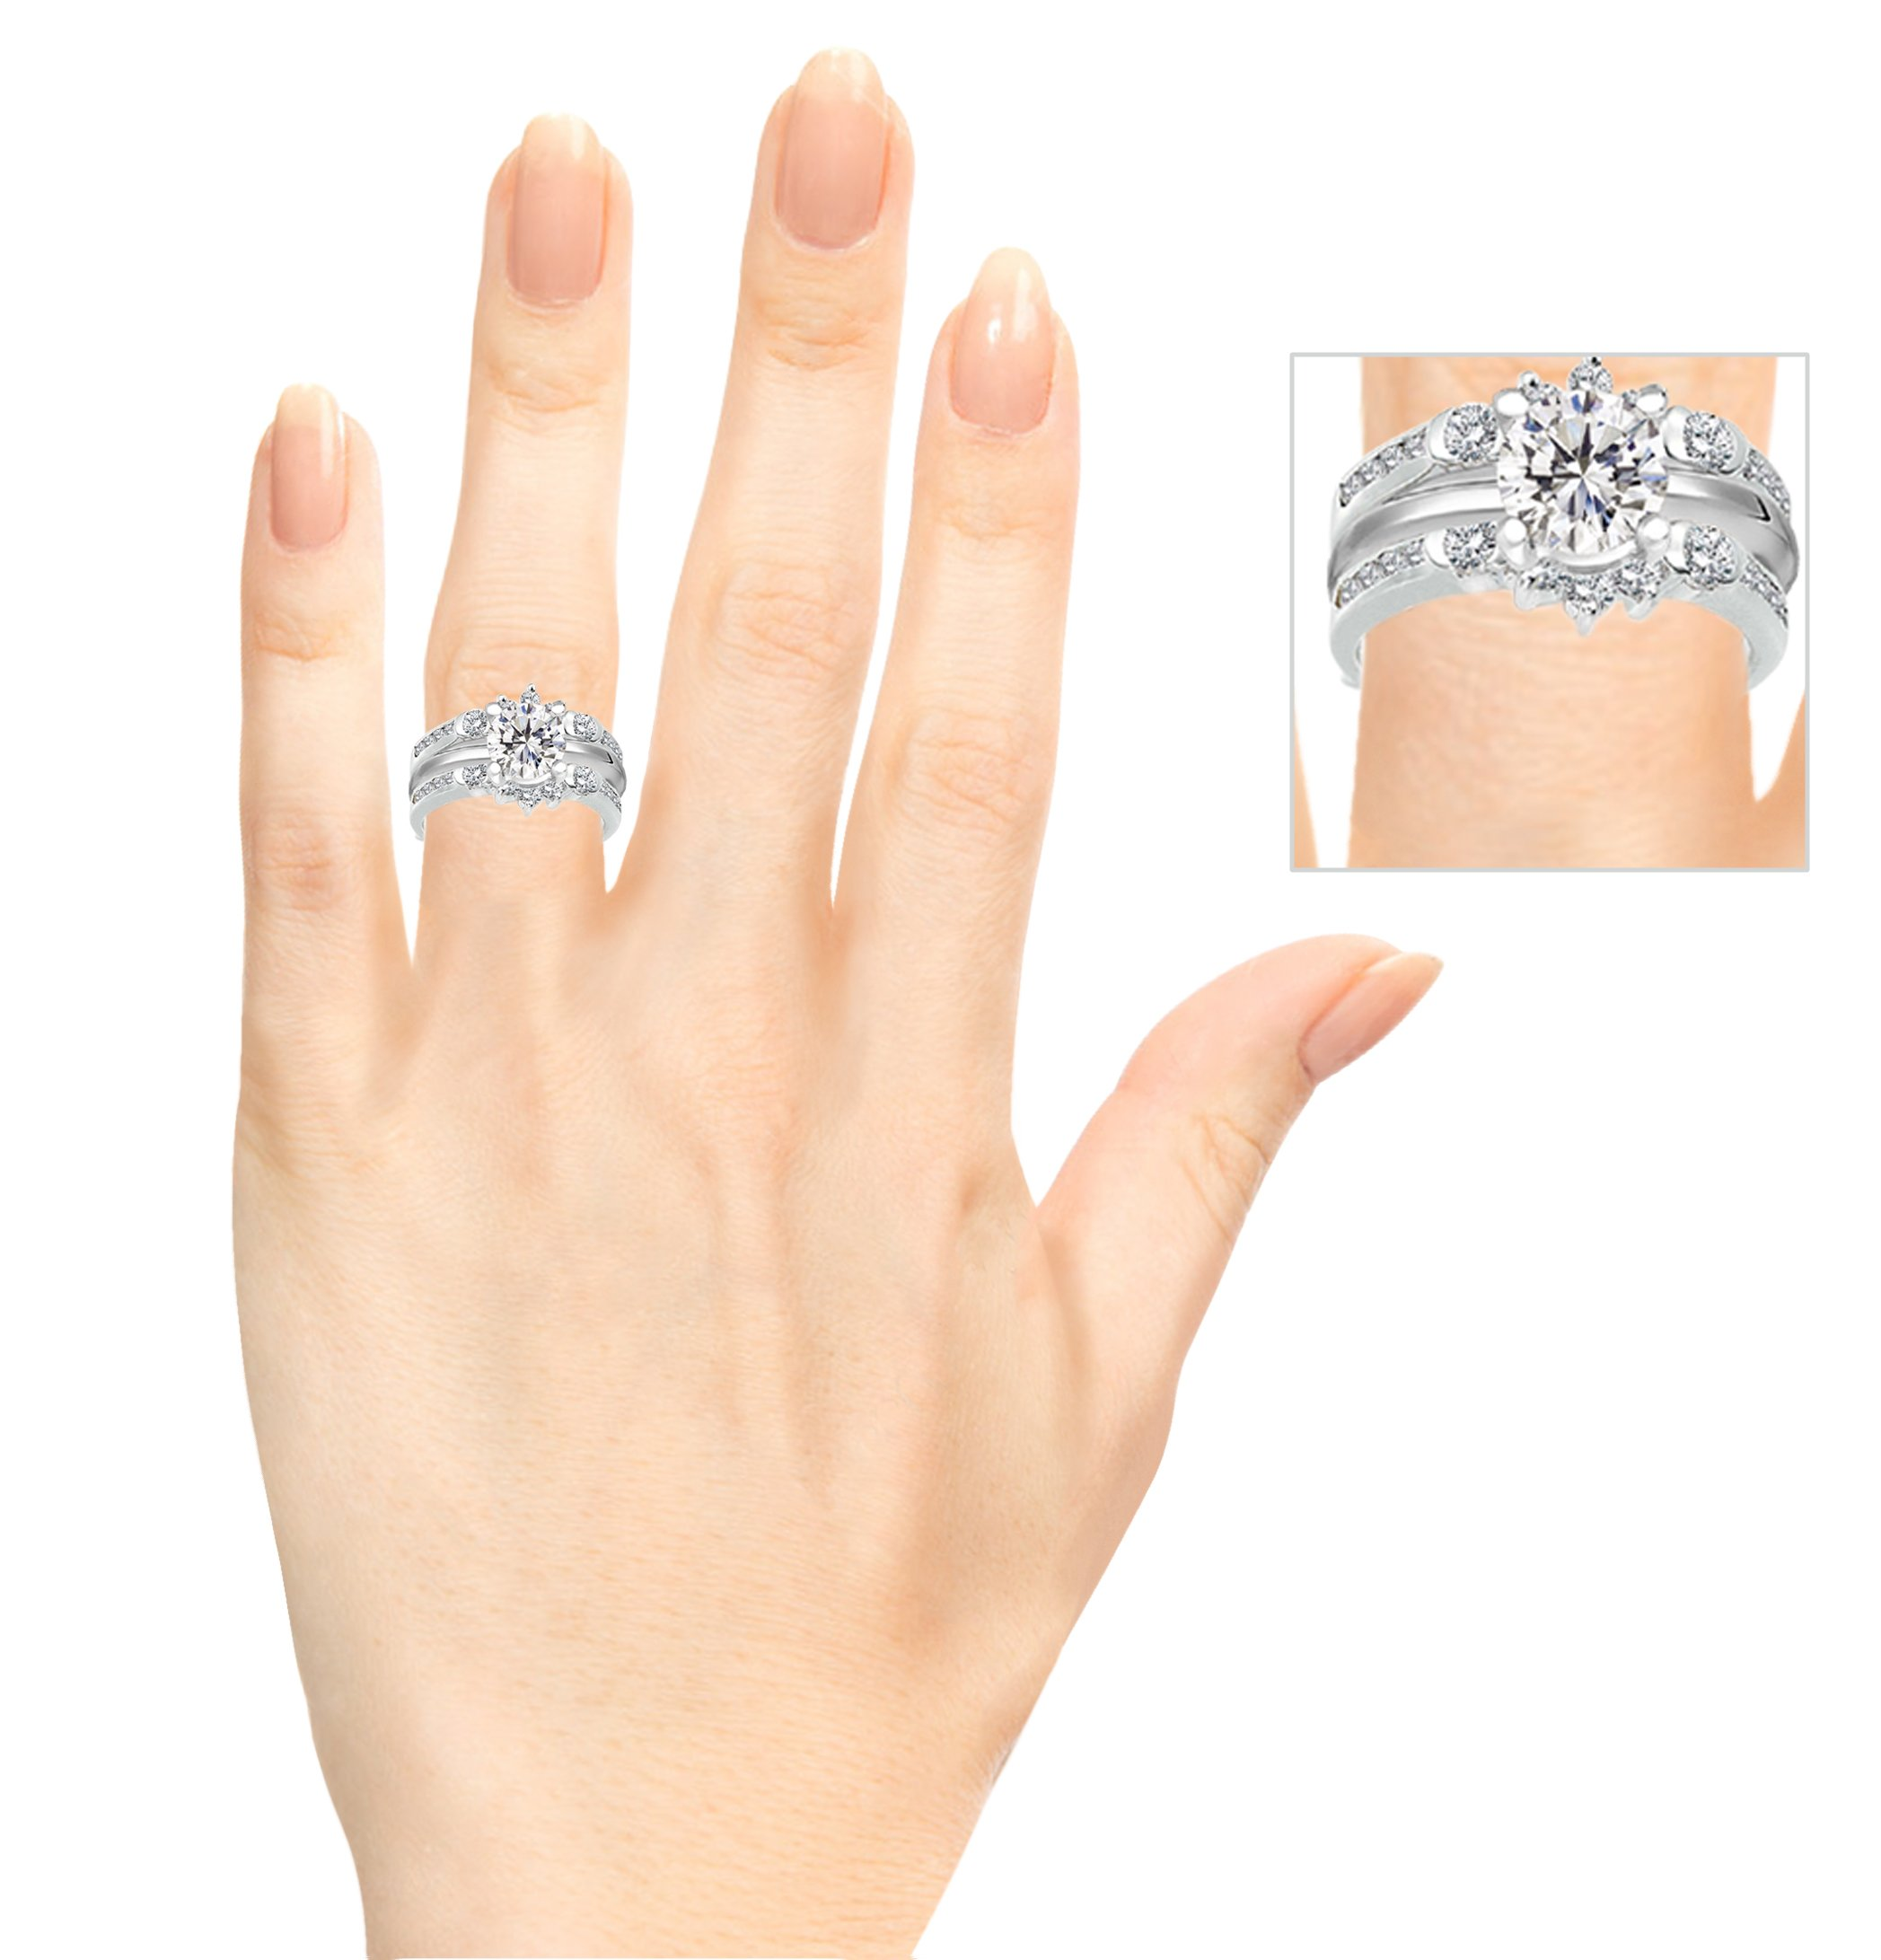 TwoBirch 1 ct. Cubic Zirconia Half Halo Classic Style Ring Guard in Sterling Silver (1 ct. twt.) by TwoBirch (Image #9)